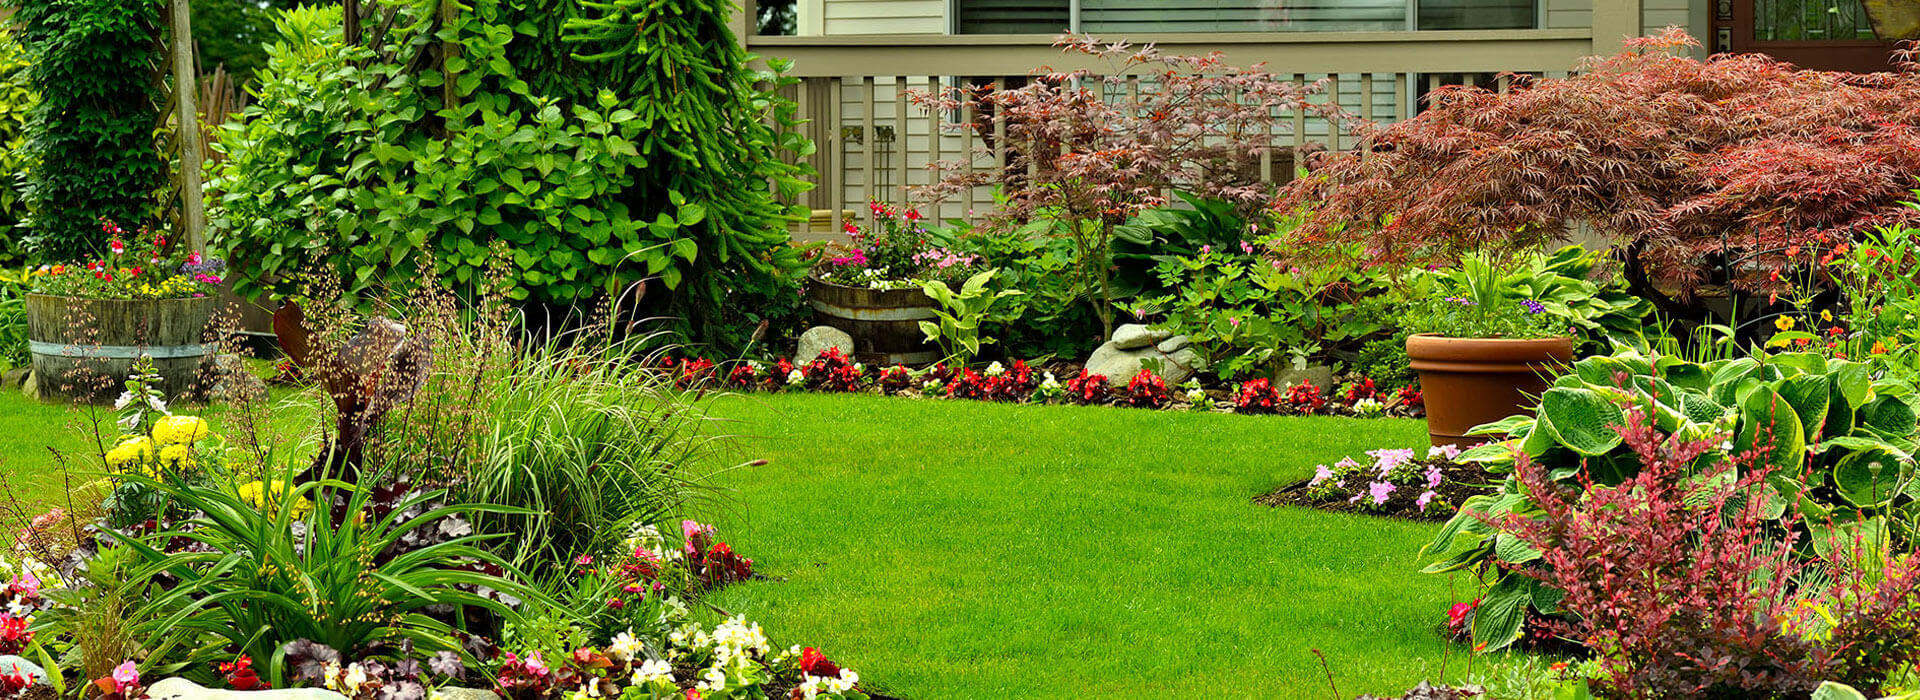 K & H Yard Services and Landscaping Garden Design